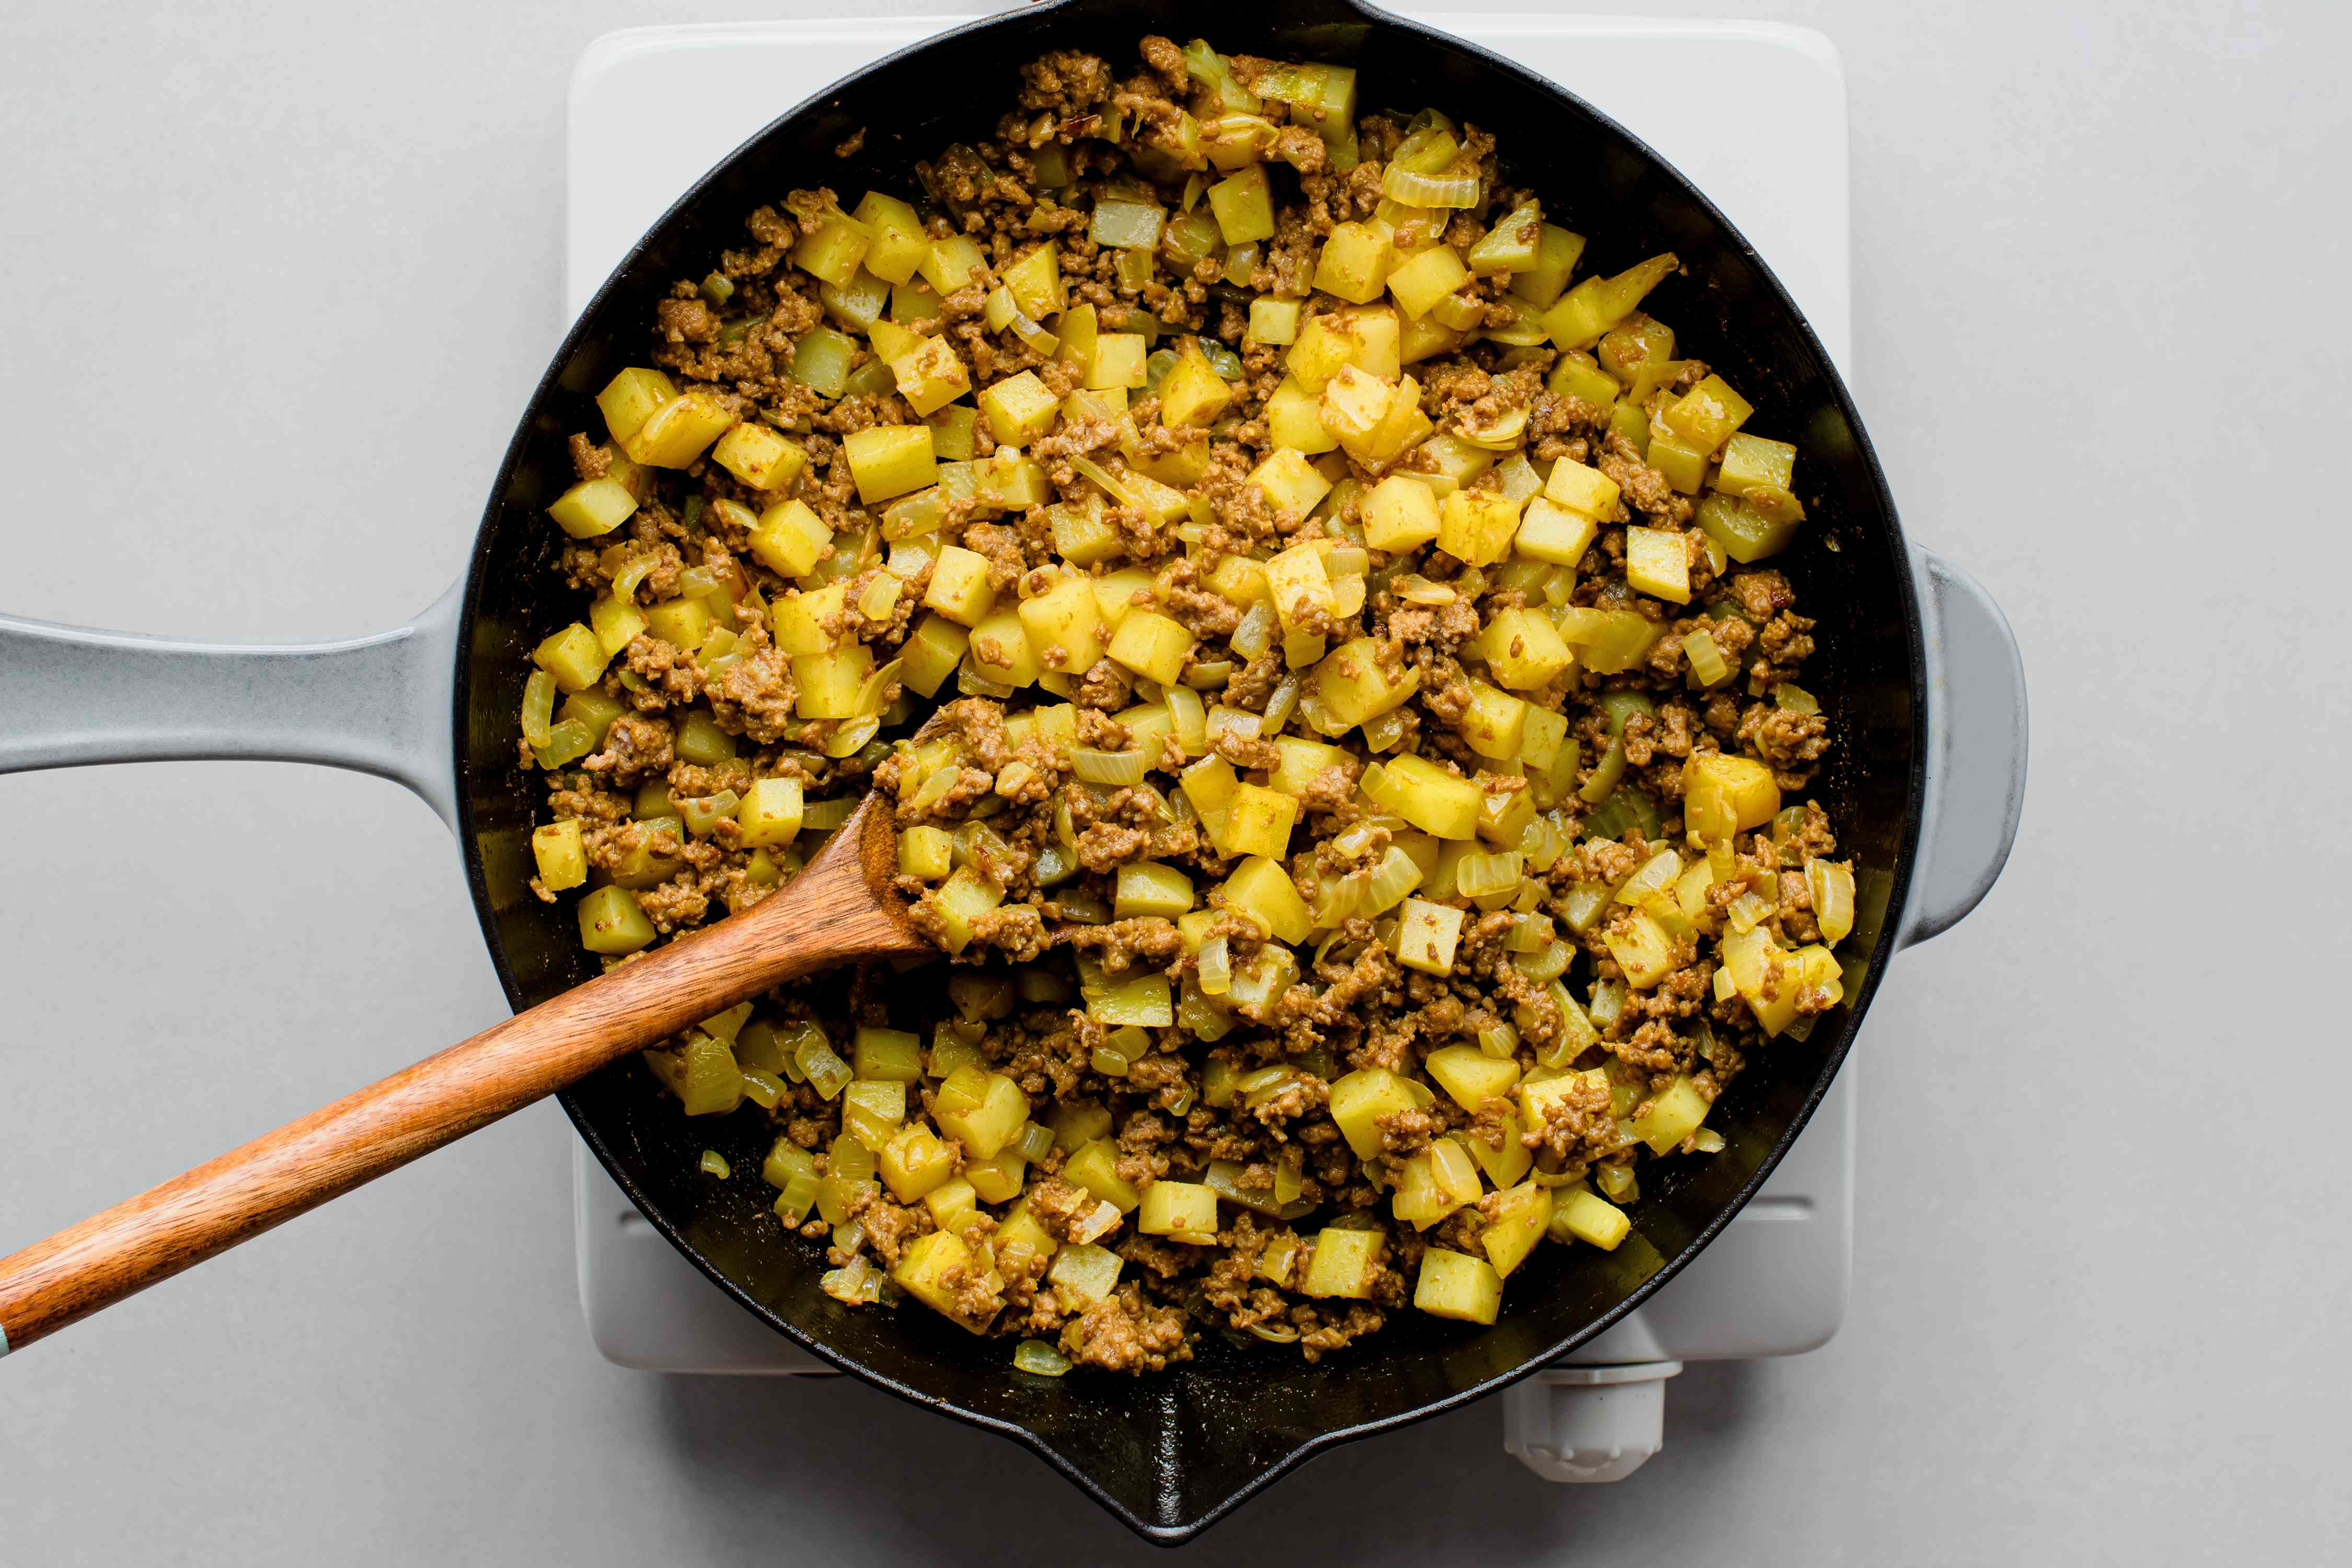 cubed potatoes added to the curry beef mixture in a skillet